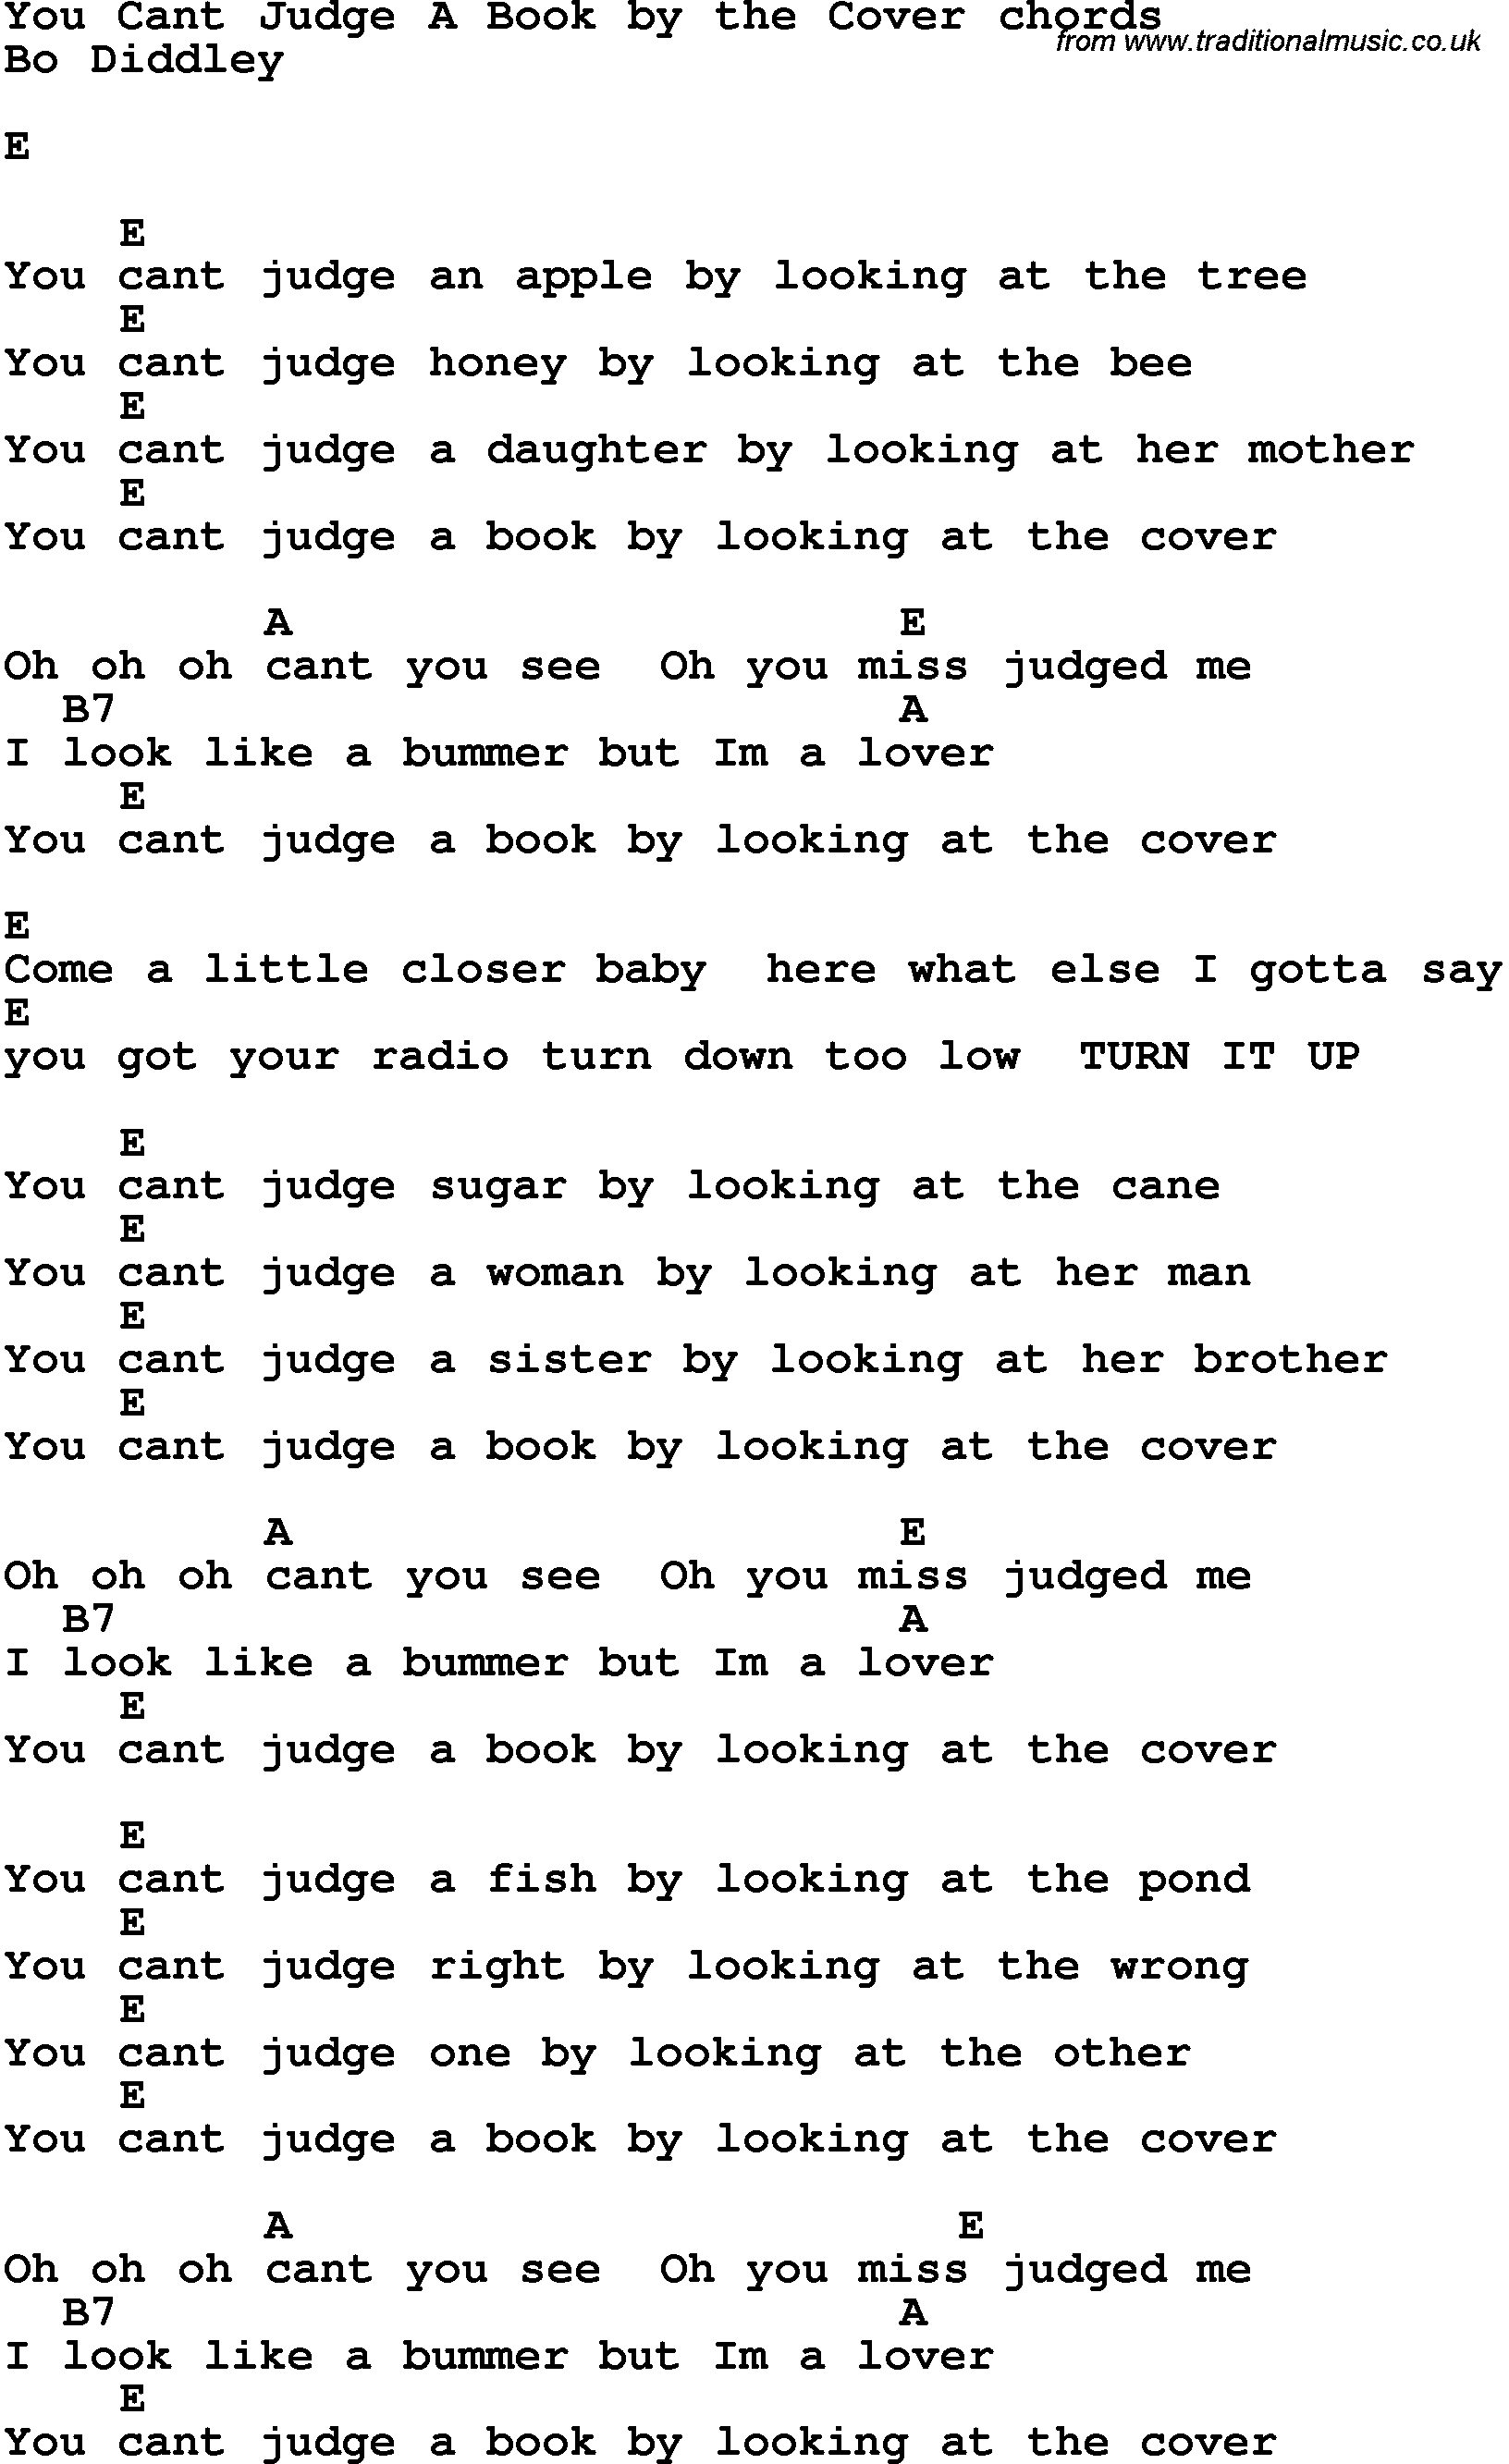 Song Lyrics With Guitar Chords For You Cant Judge A Book By The Cover